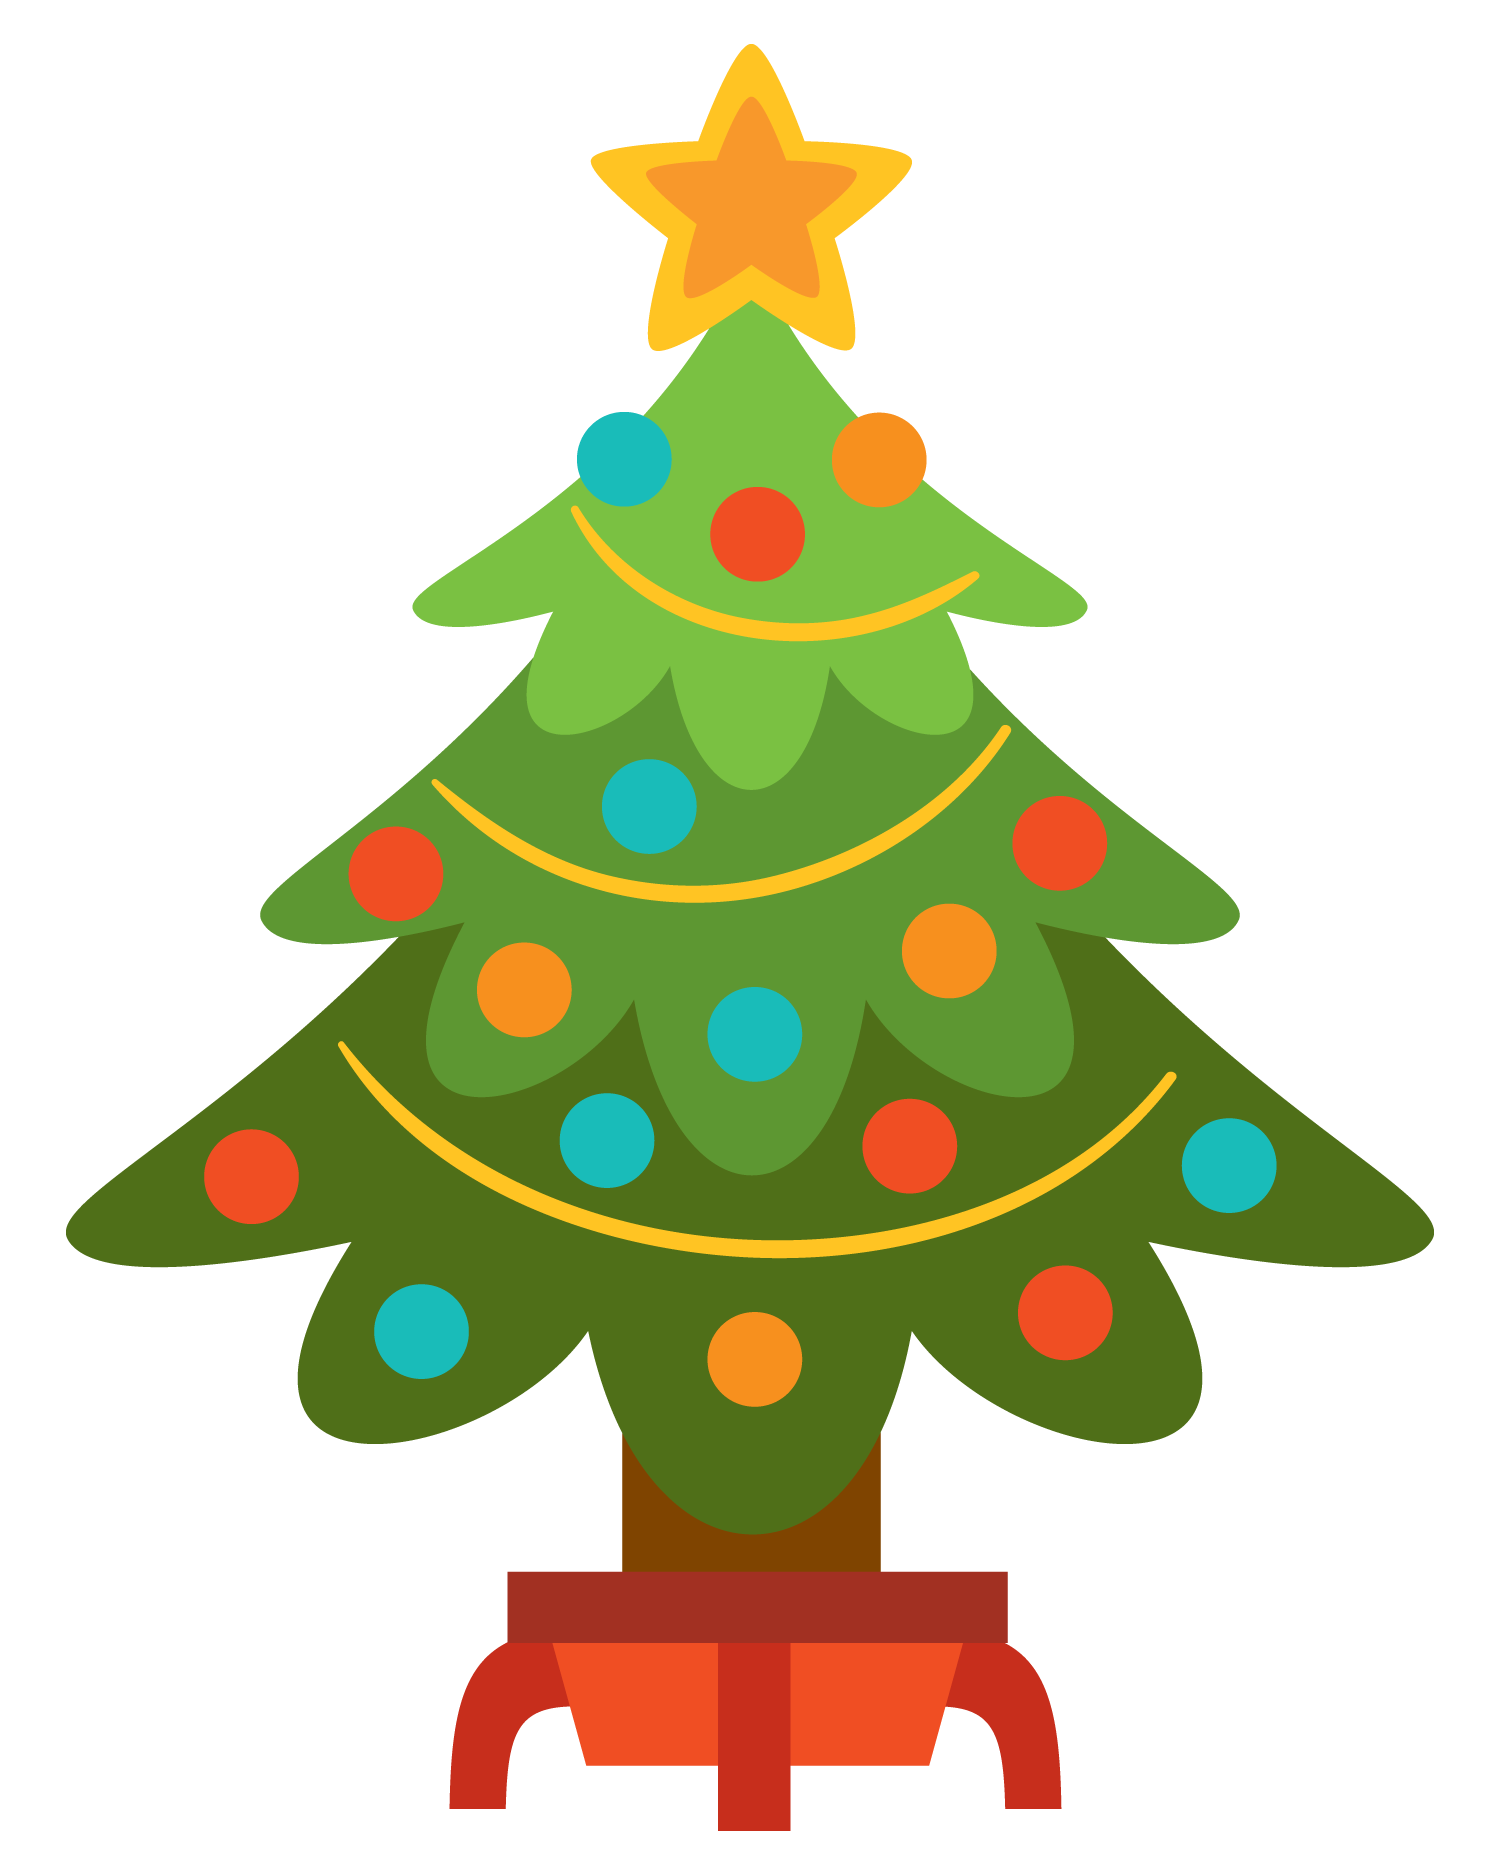 Free Christmas Tree Clip Art, Download Free Clip Art, Free.